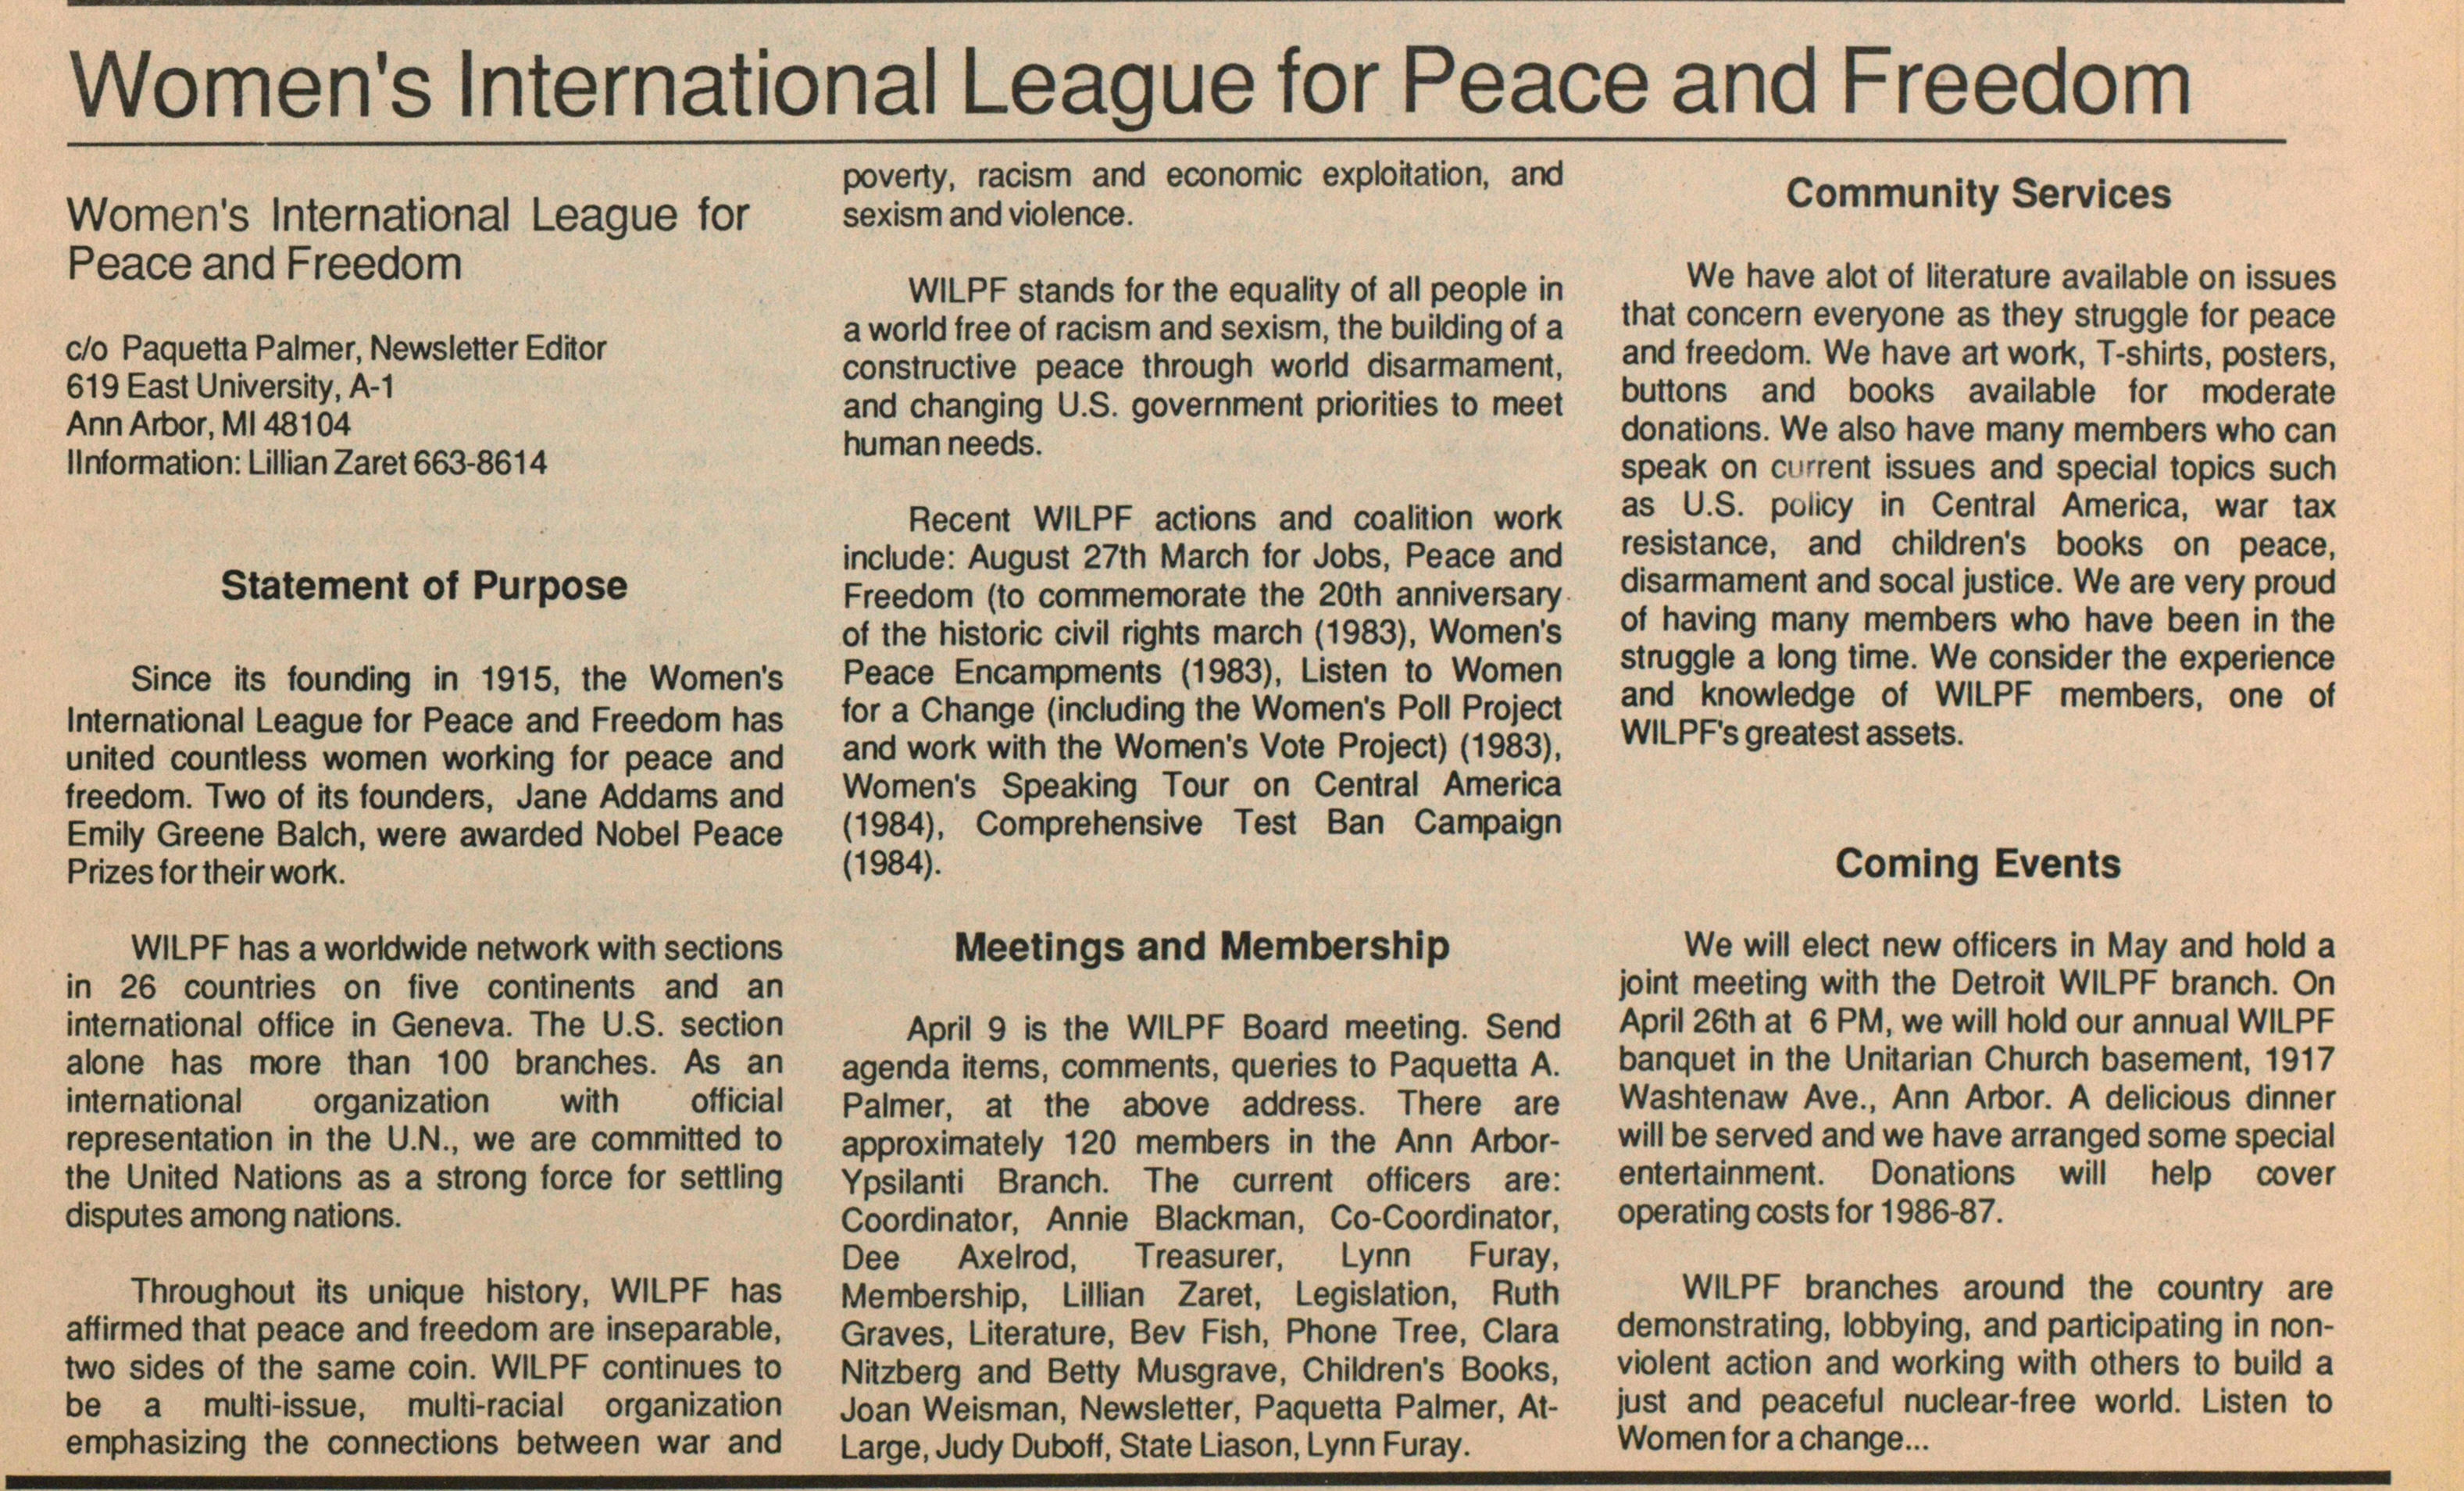 Women's International League For Peace And Freedom image